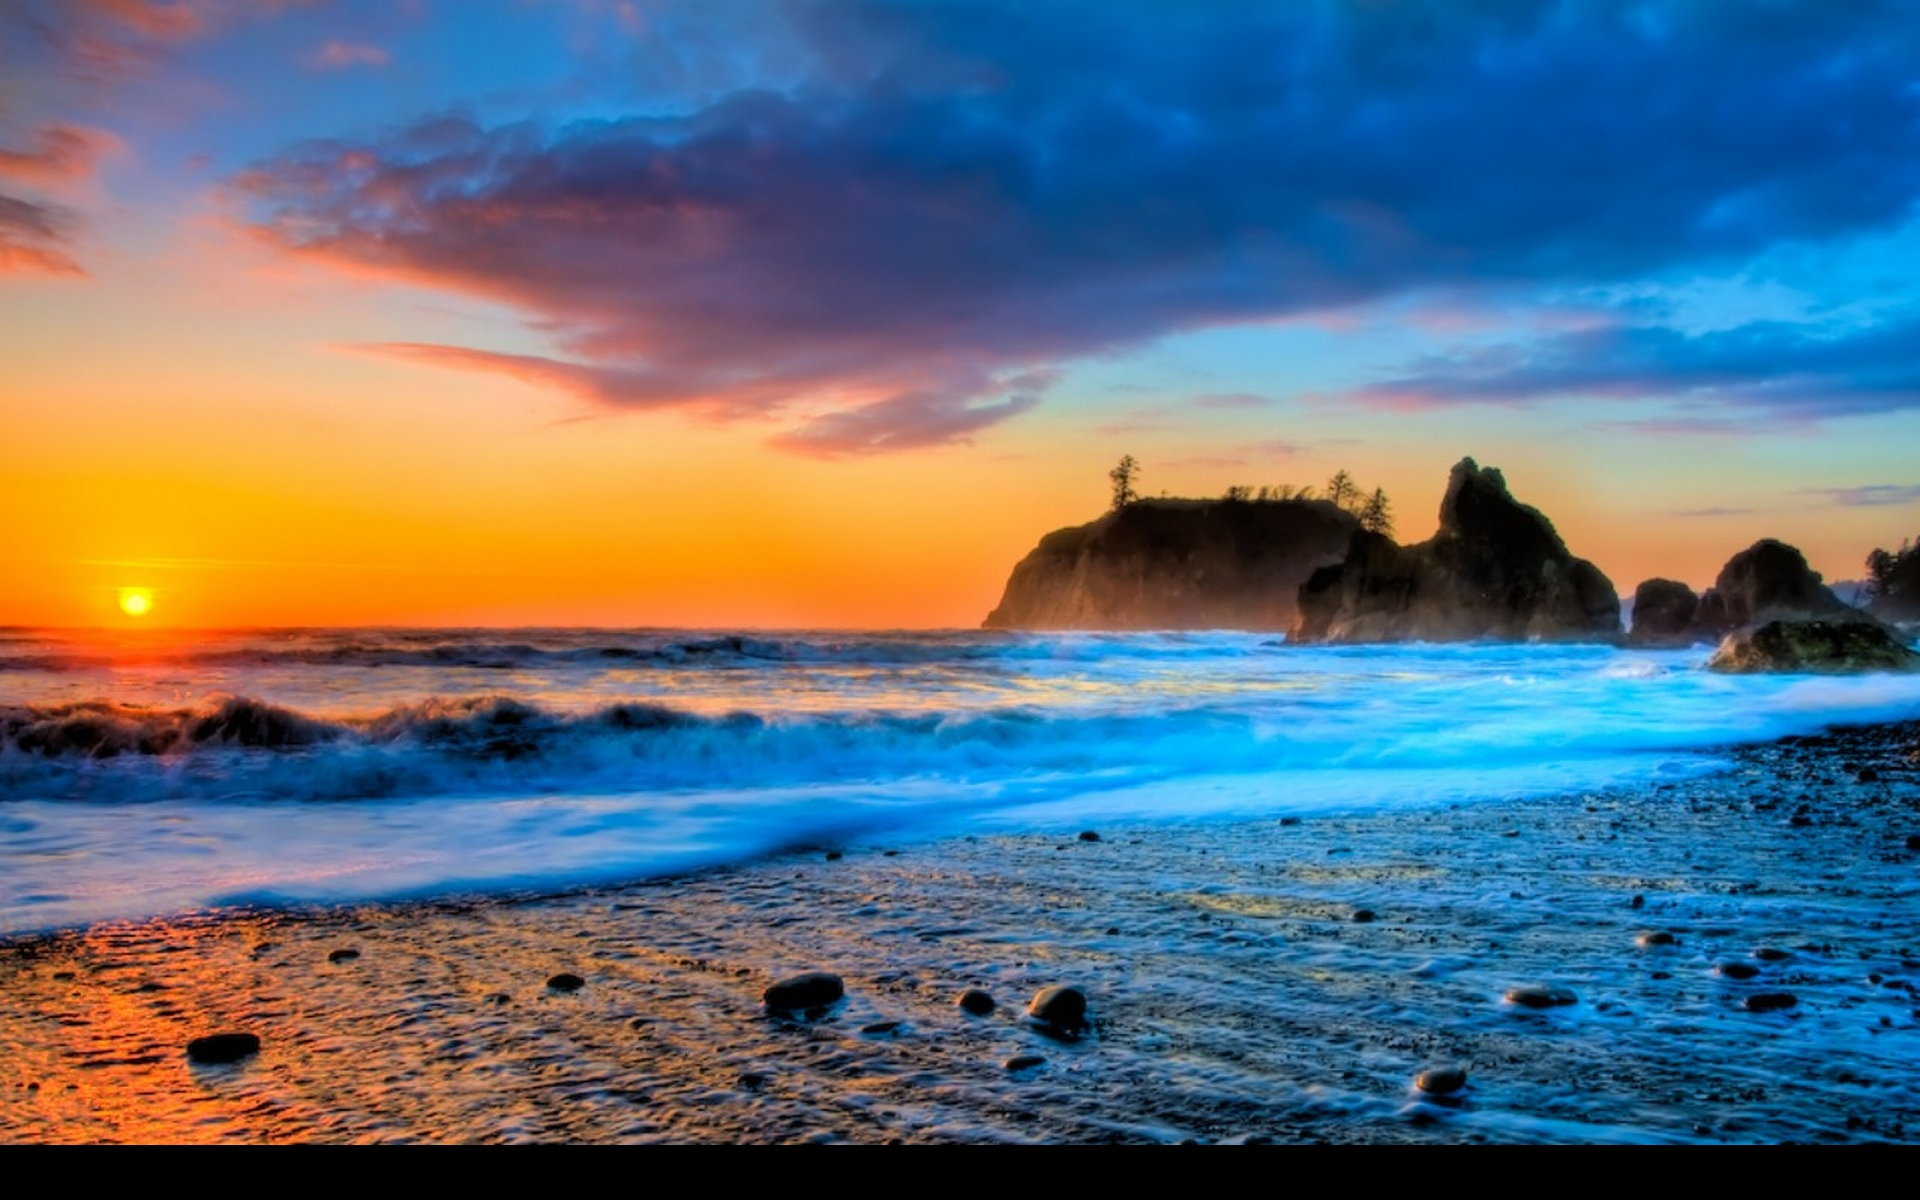 Beach Sunset Wallpaper Free Download #2342 Wallpaper | Cool ...